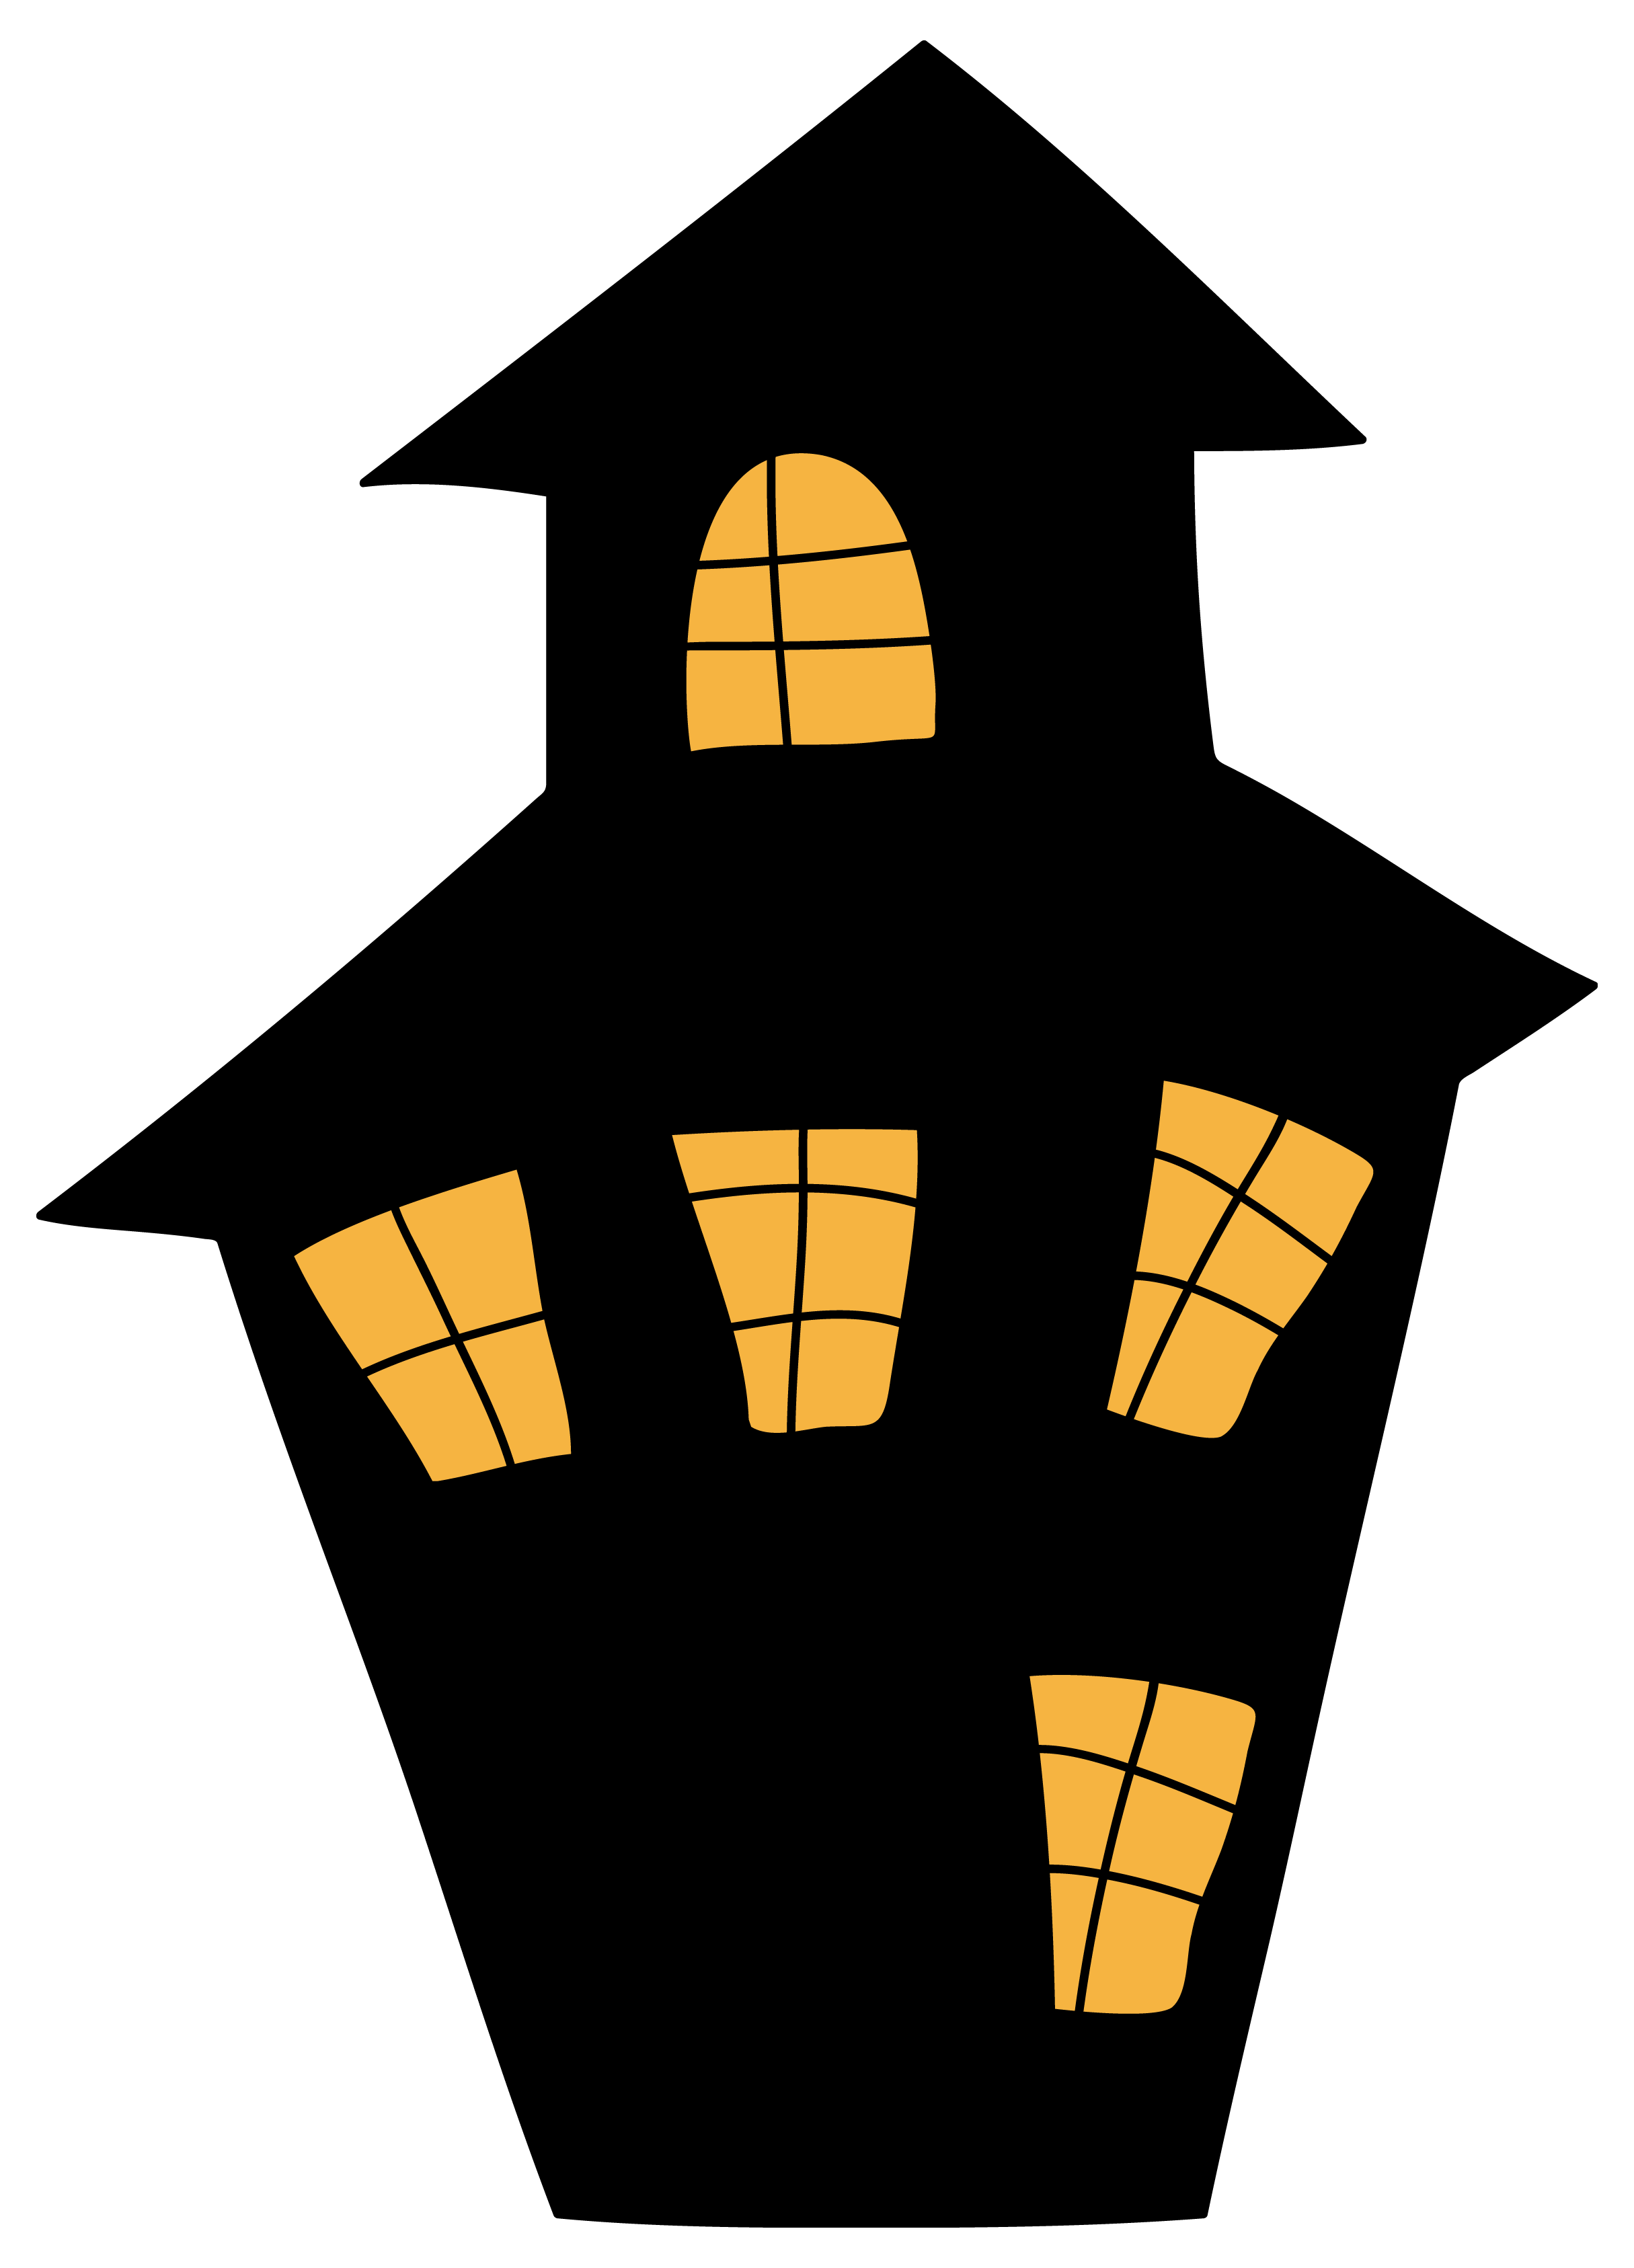 Disney haunted mansion clipart png. House silhouette clip art